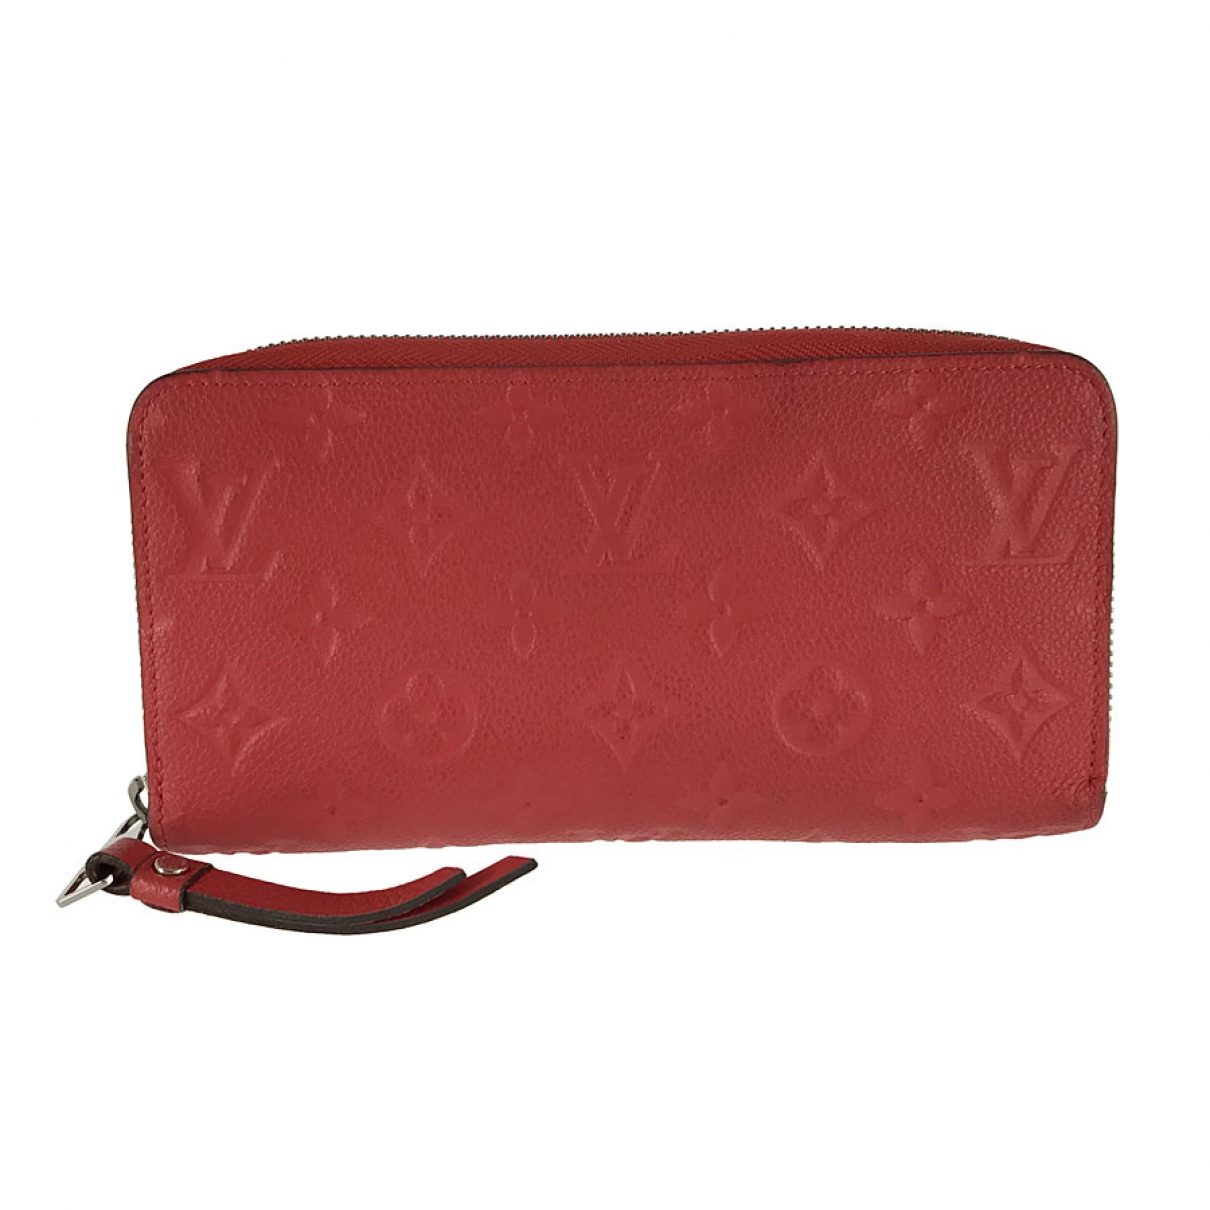 Louis Vuitton Zippy Portemonnaie in  Rot Leder